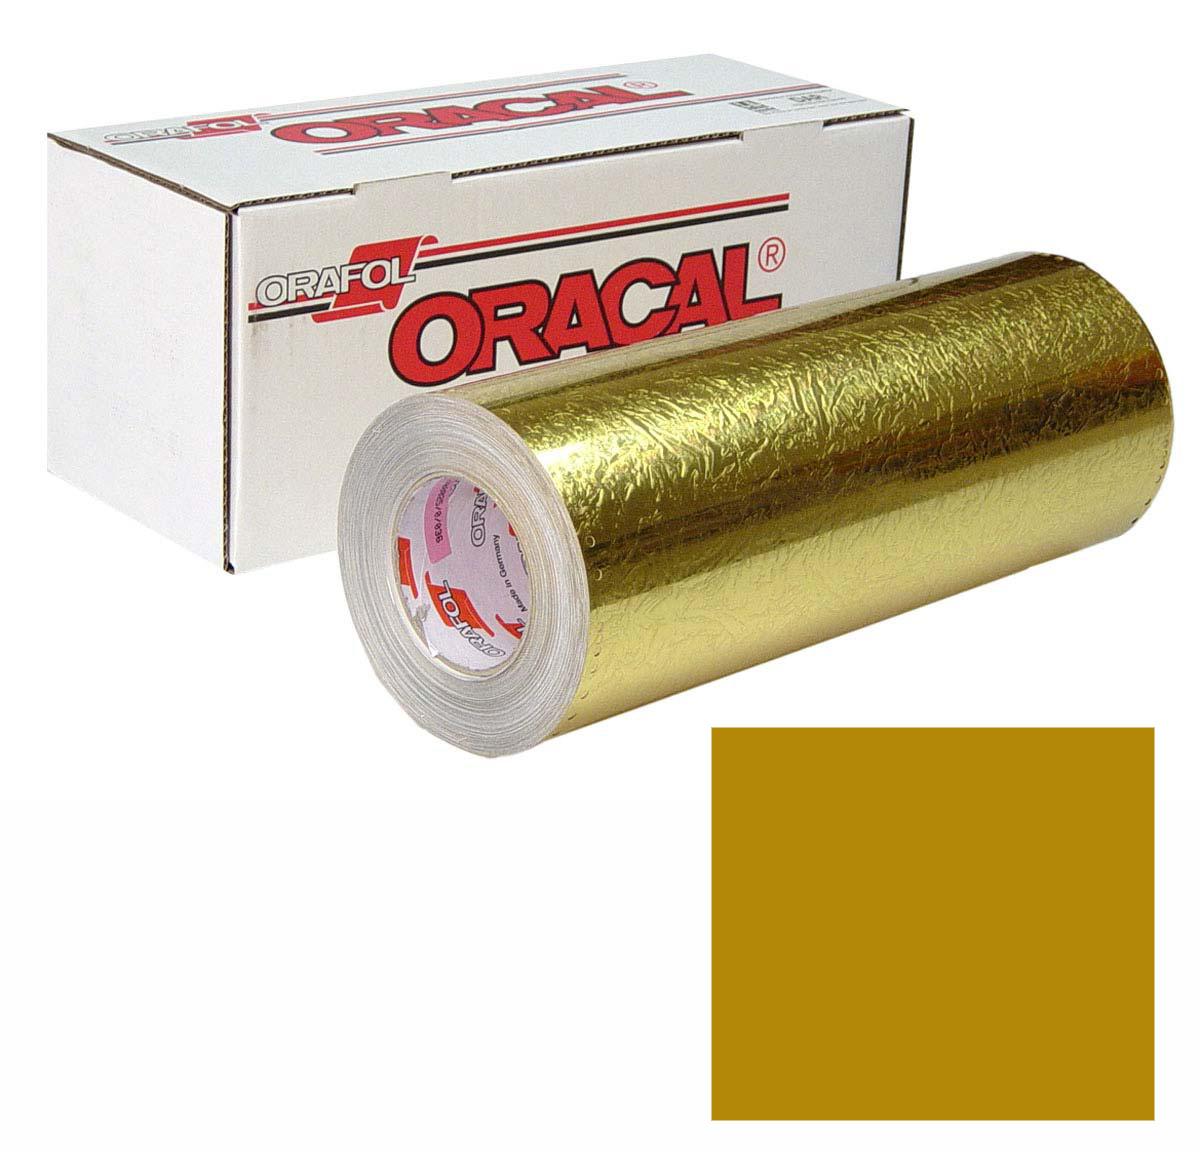 ORACAL 383 Ultraleaf 48In X 10Yd 003-Gold